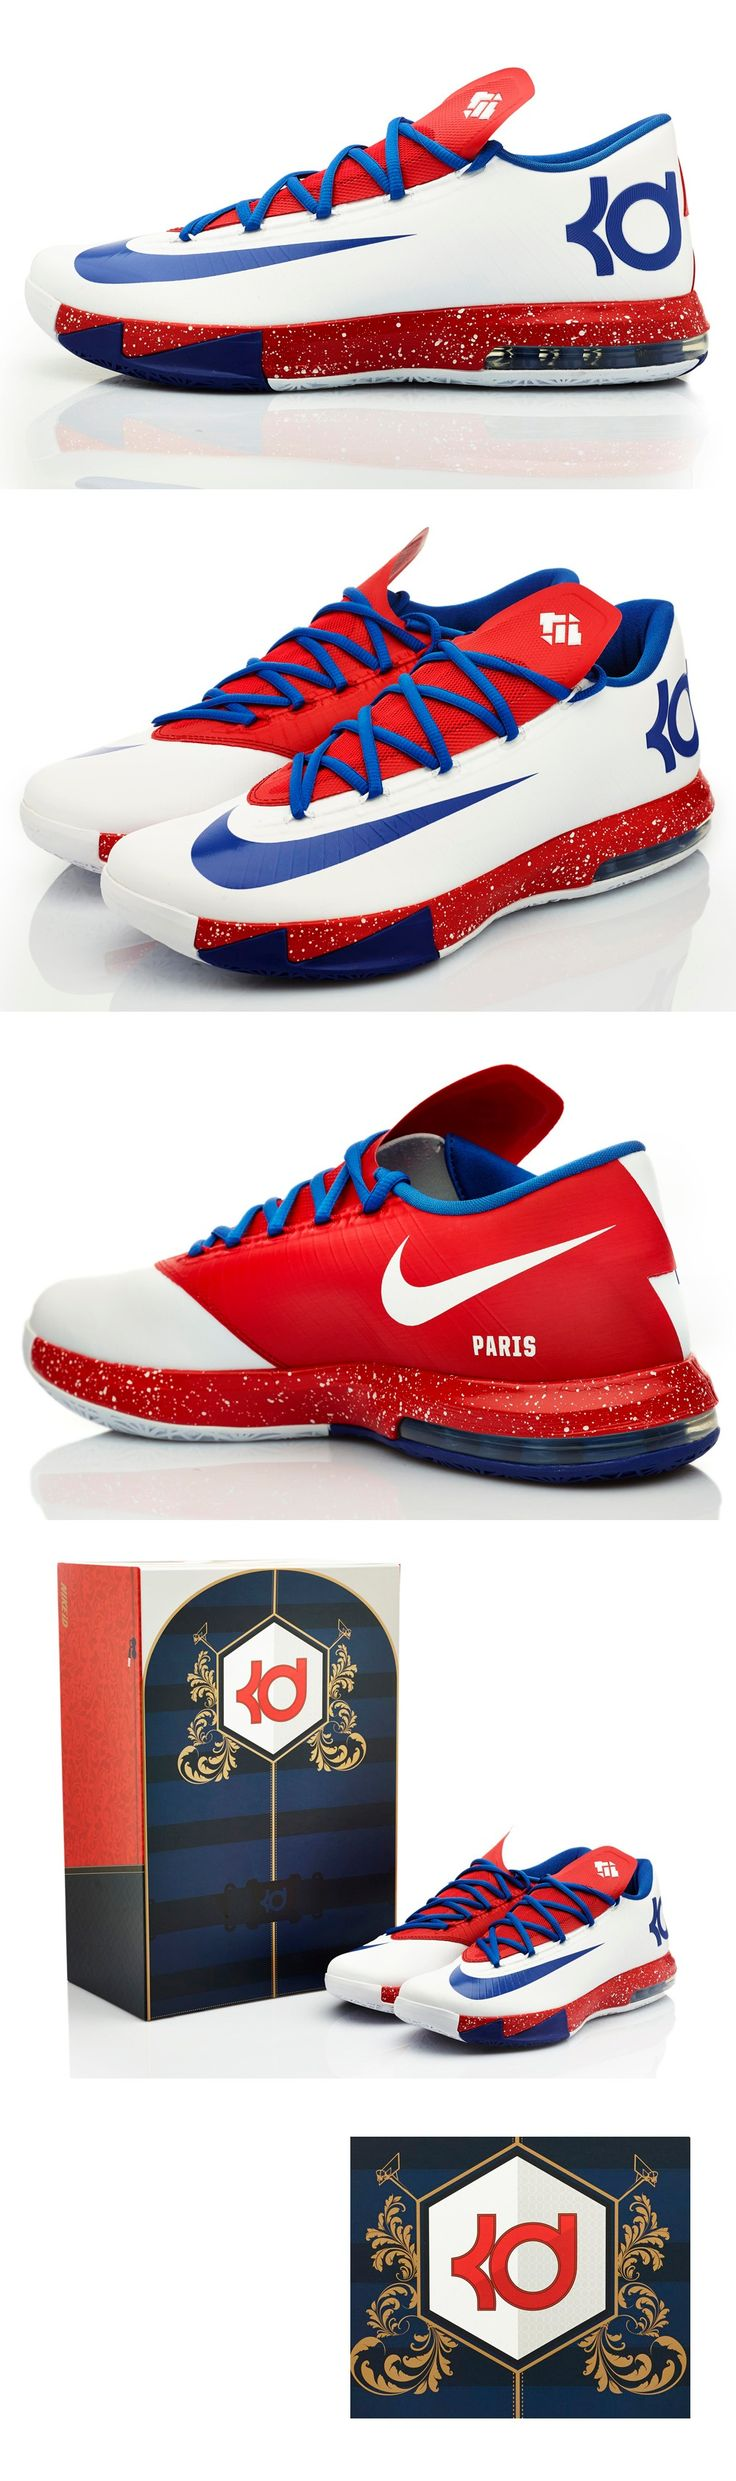 "Nike iD ""Paris"" KD VI: exclusive to Nike Les Halles"